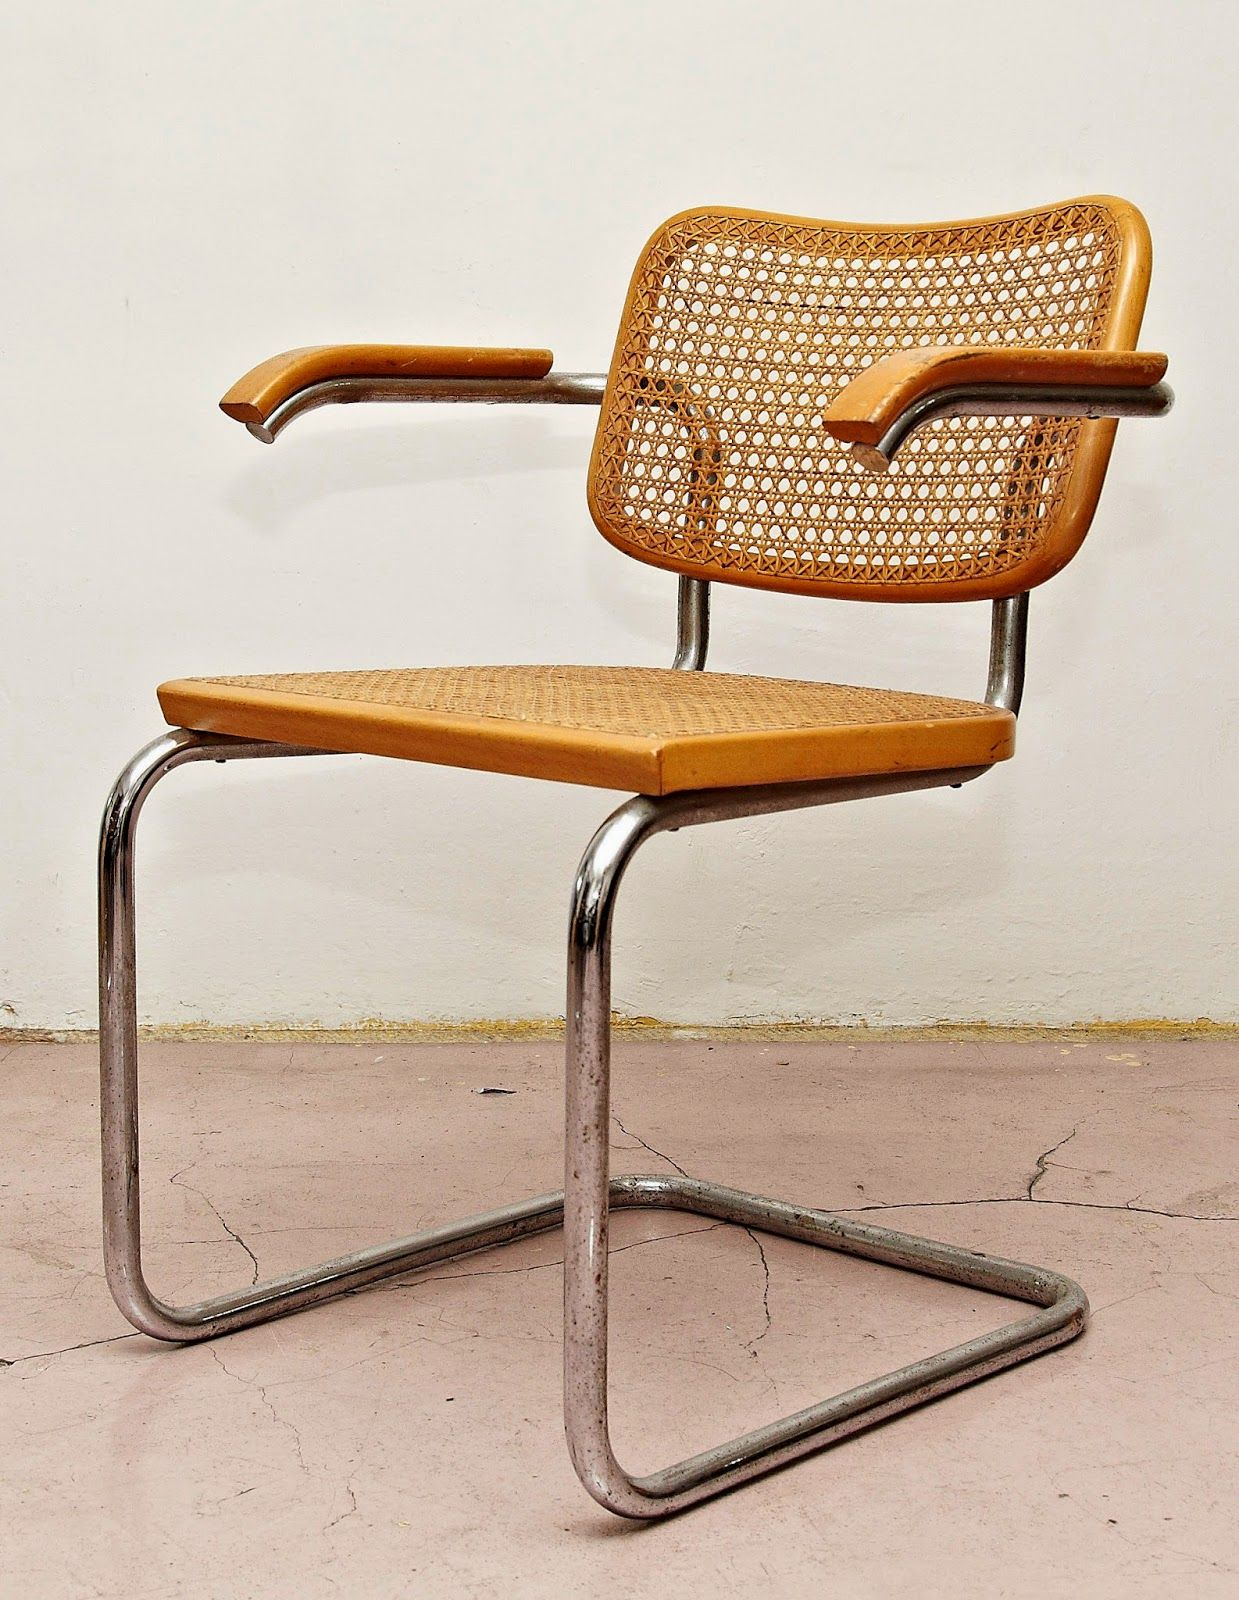 marcel breuer cesca chair with armrests teak adirondack ourso designs 1928